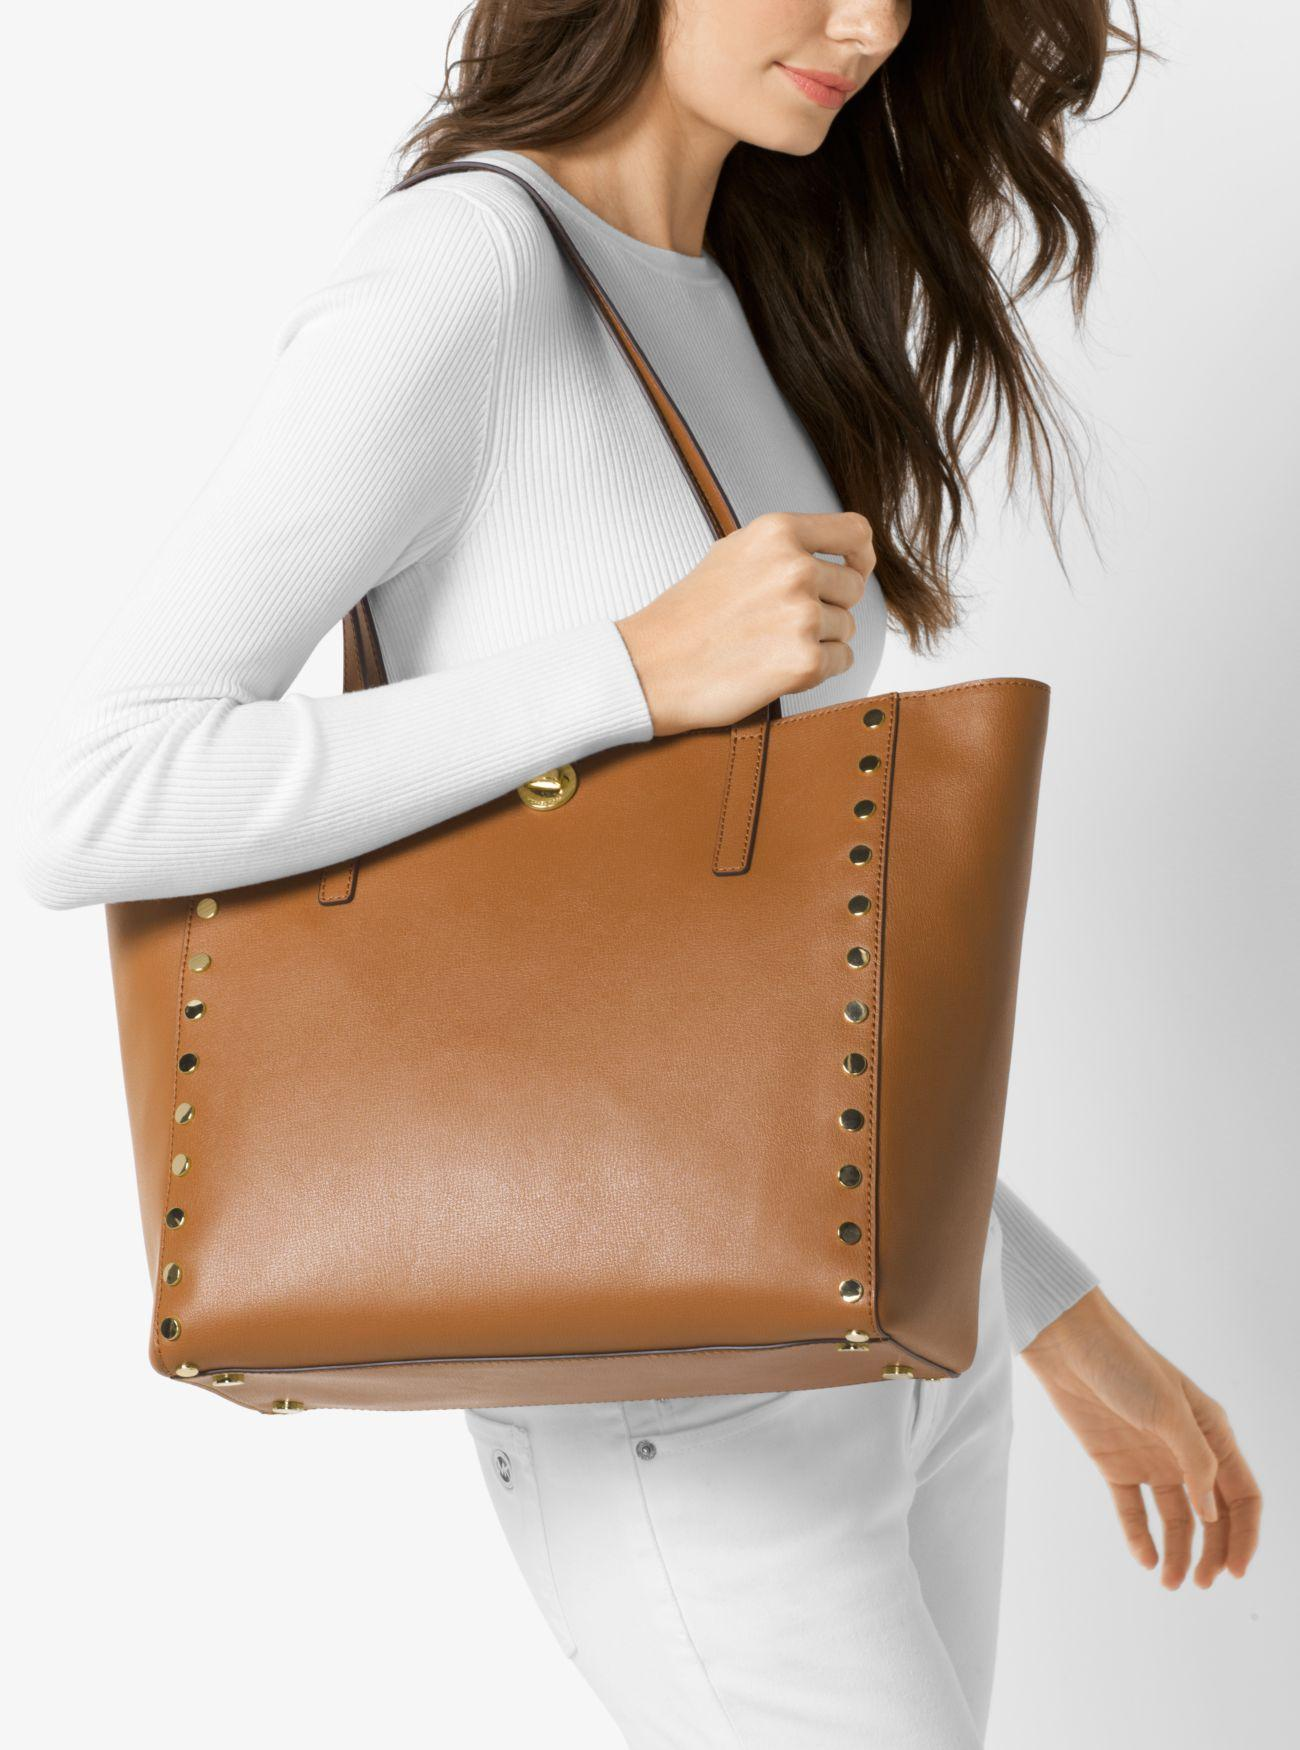 09257285ac19b Lyst - Michael Kors Rivington Large Studded Leather Tote in Brown